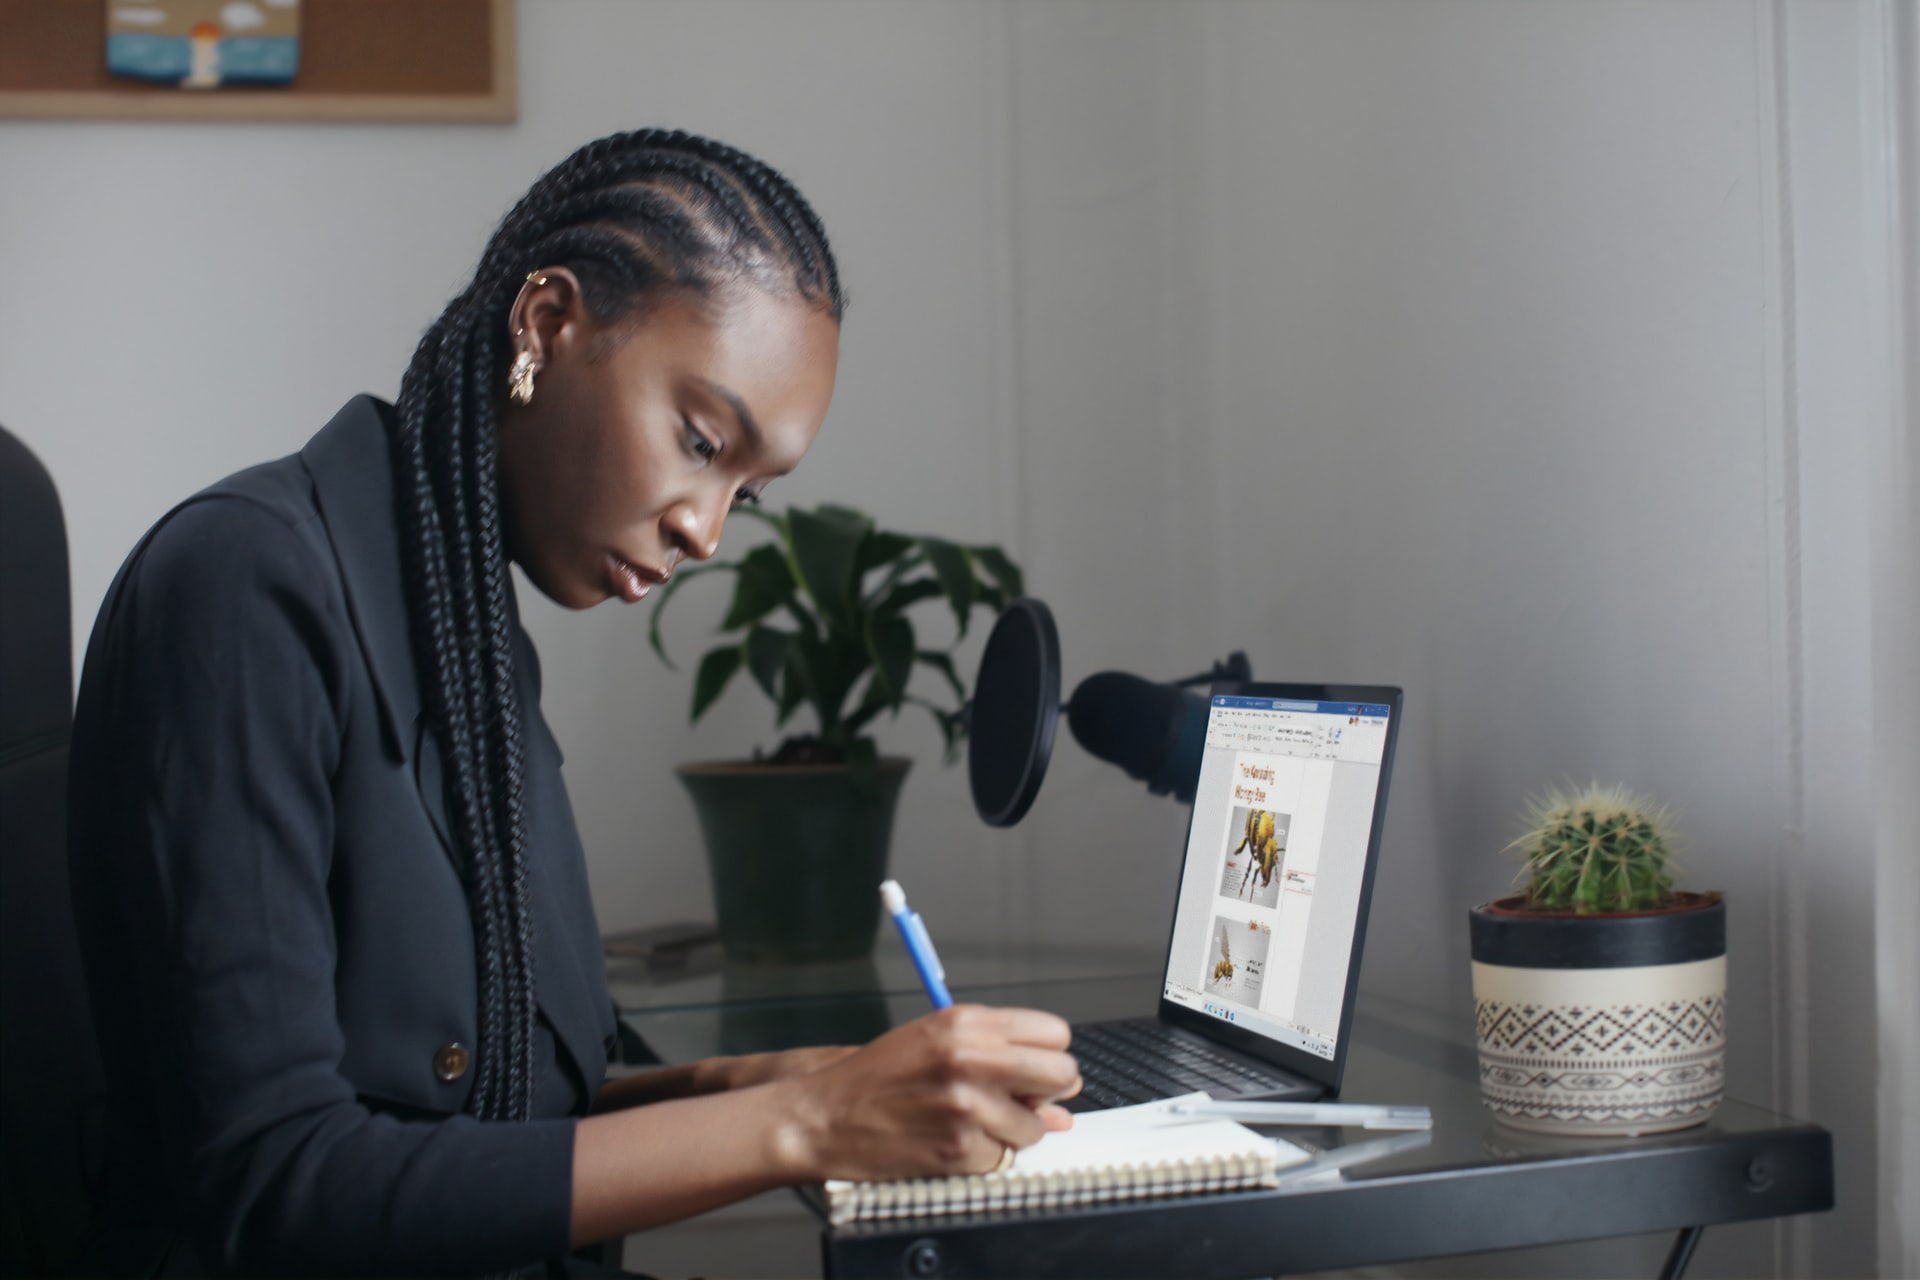 As an employee, what are my tax deductible expenses?